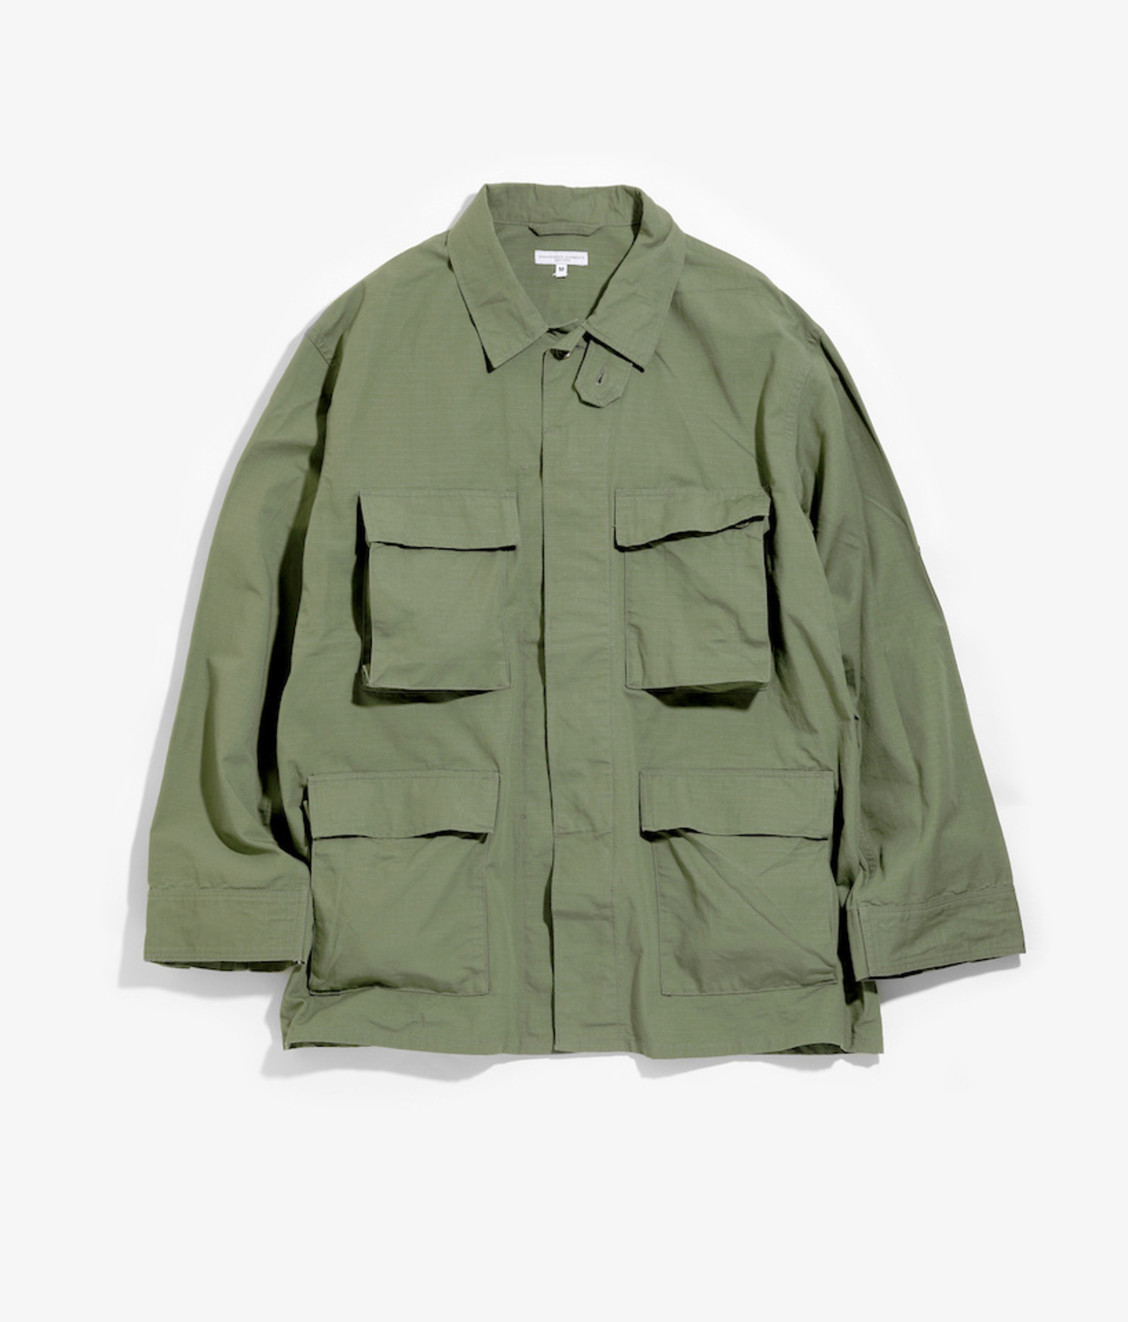 Engineered Garments Engineered Garments BDU Jacket Olive Ripstop